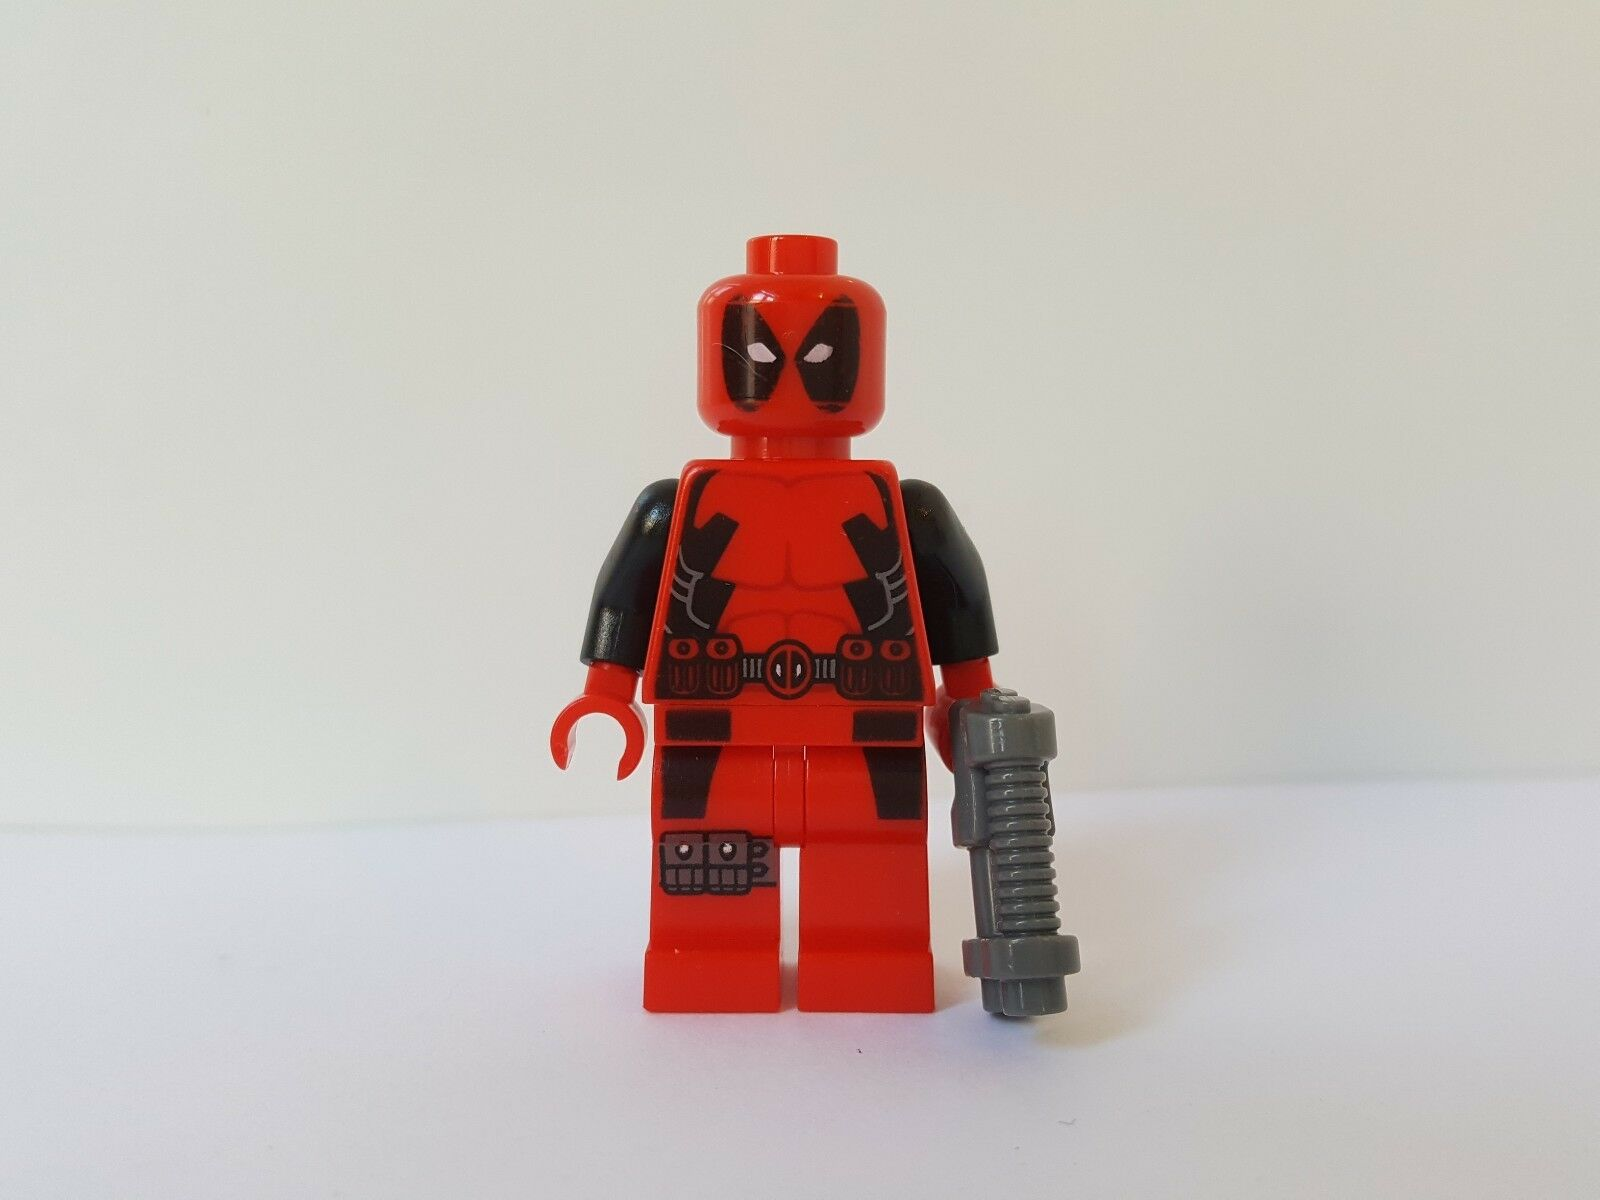 Genuine Lego Deadpool Minifigure minifig Super Heroes Mini Figure ref26178 6866